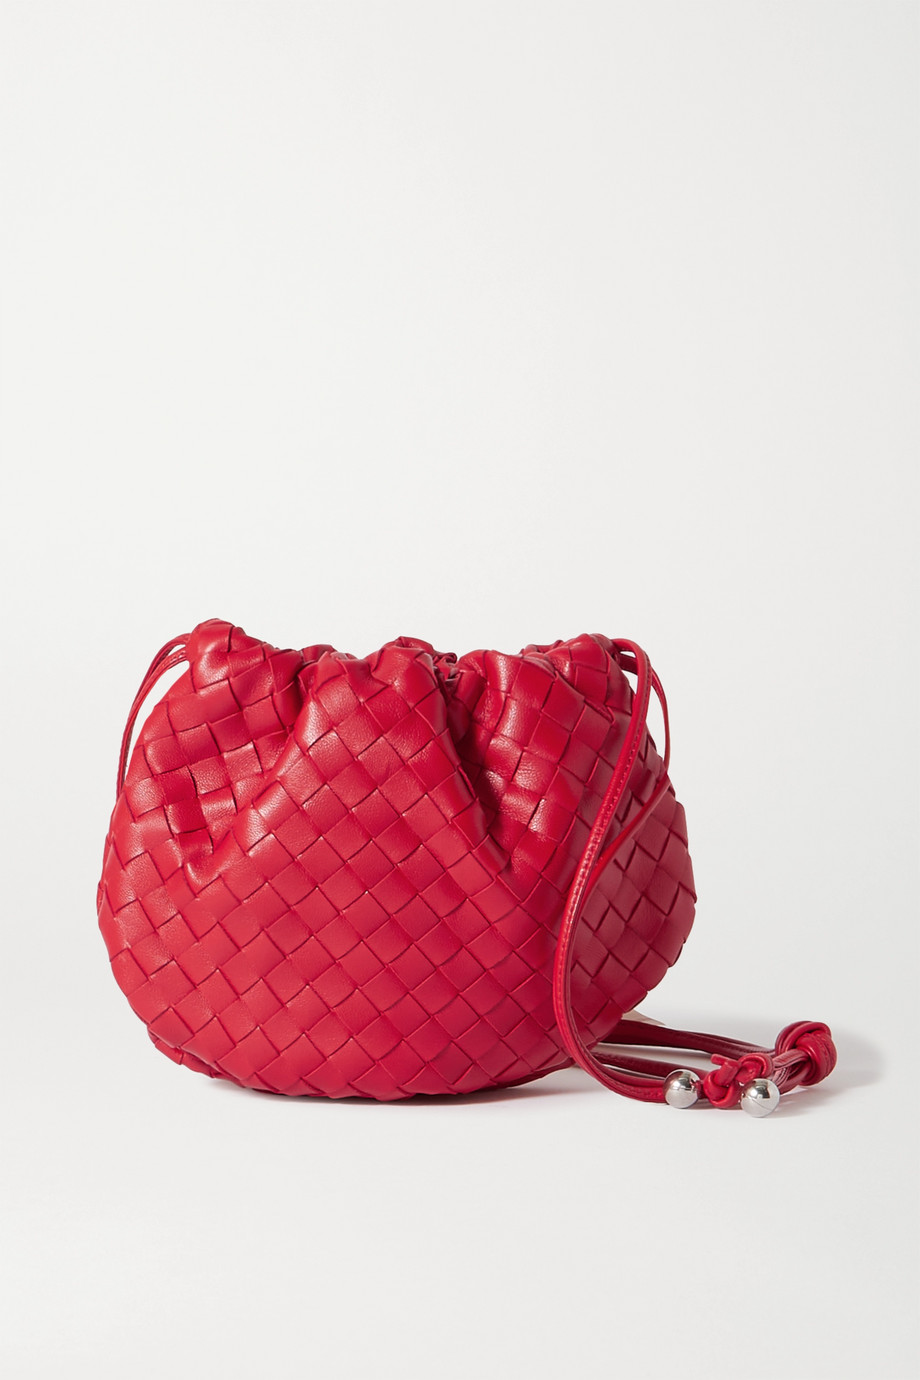 Bottega Veneta Sac porté épaule en cuir intrecciato à fronces The Mini Bulb